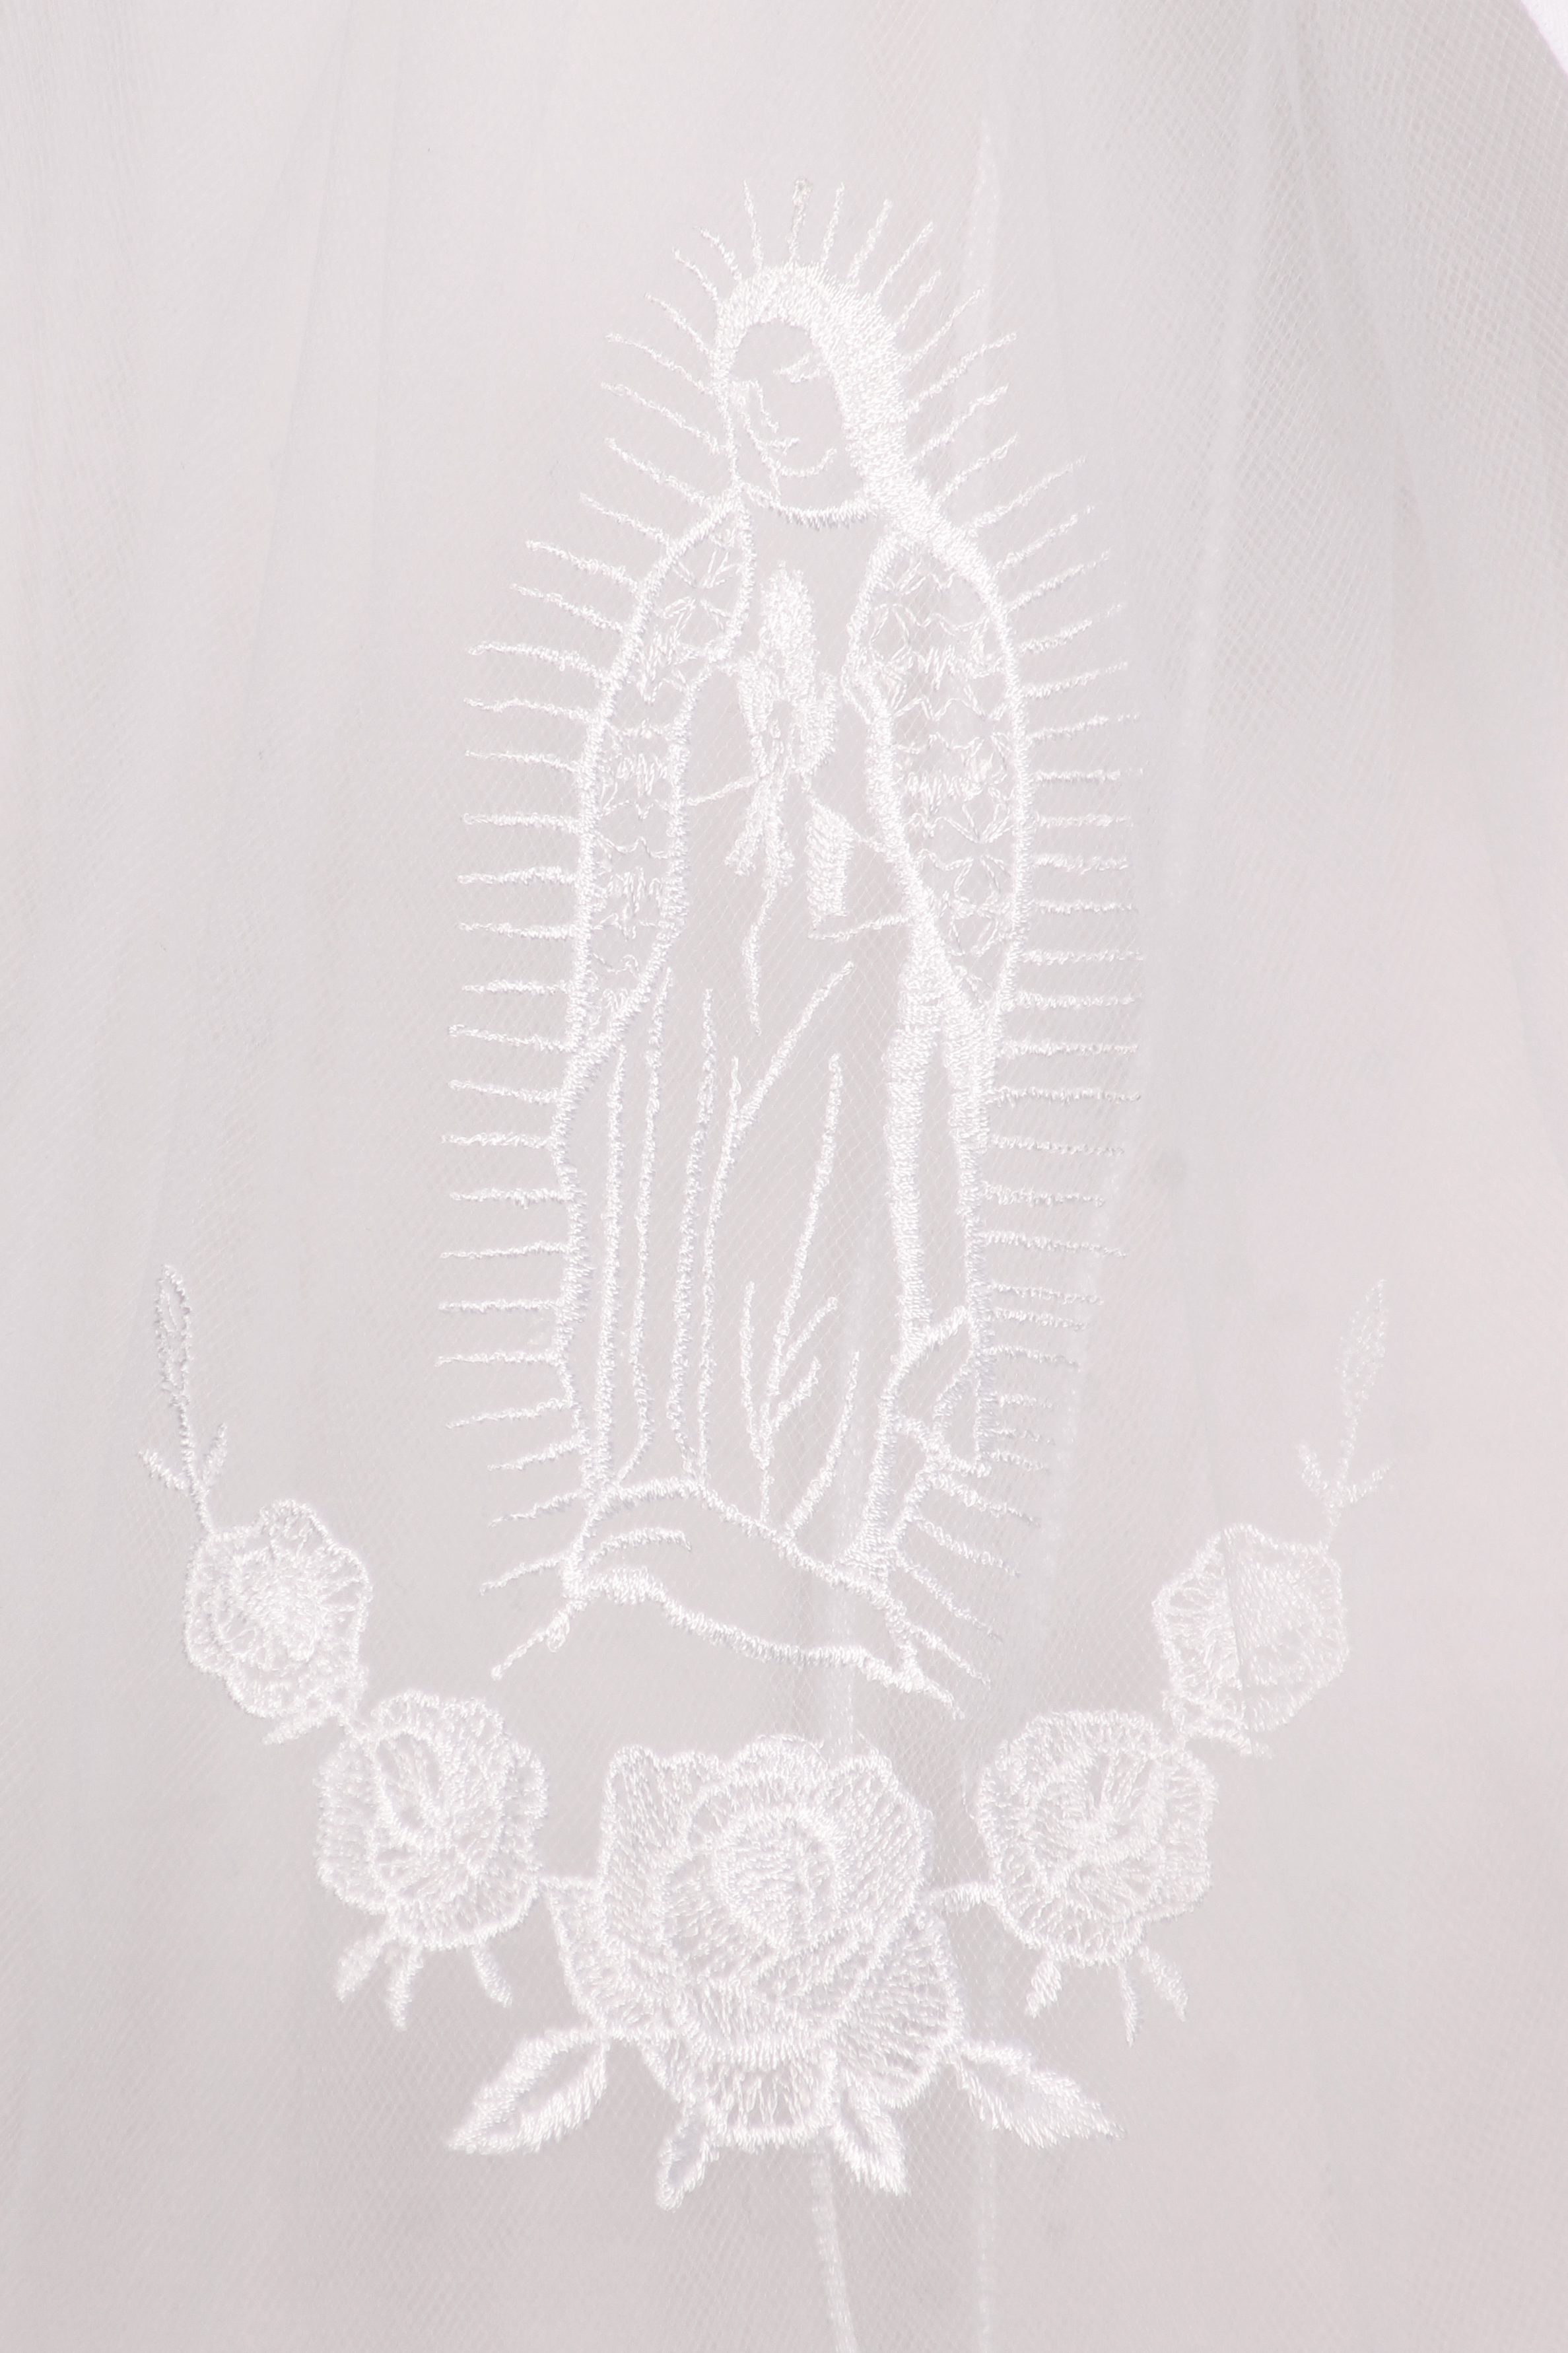 virgin mary veil